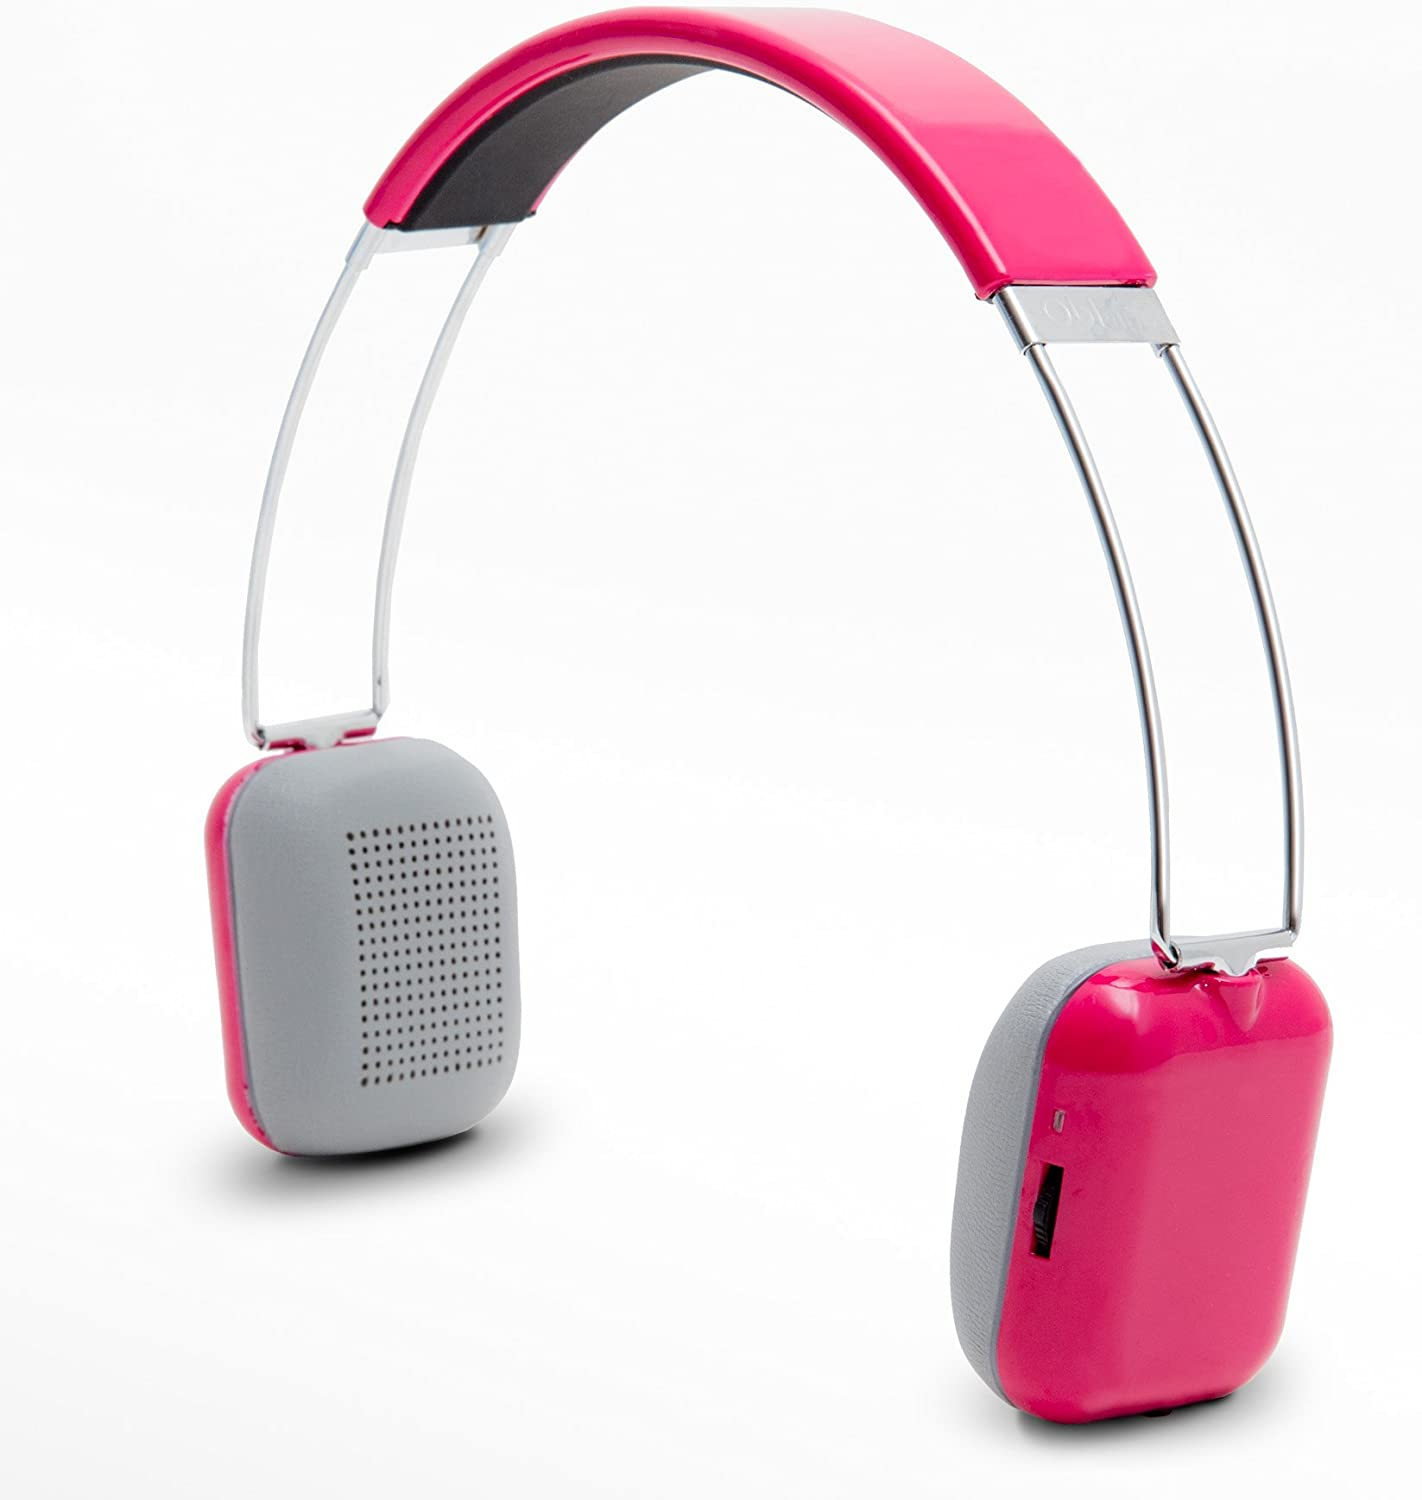 Oblanc SY-AUD23061 Rendezvous Wireless Bluetooth Headphone with Built In Micrphone Pink